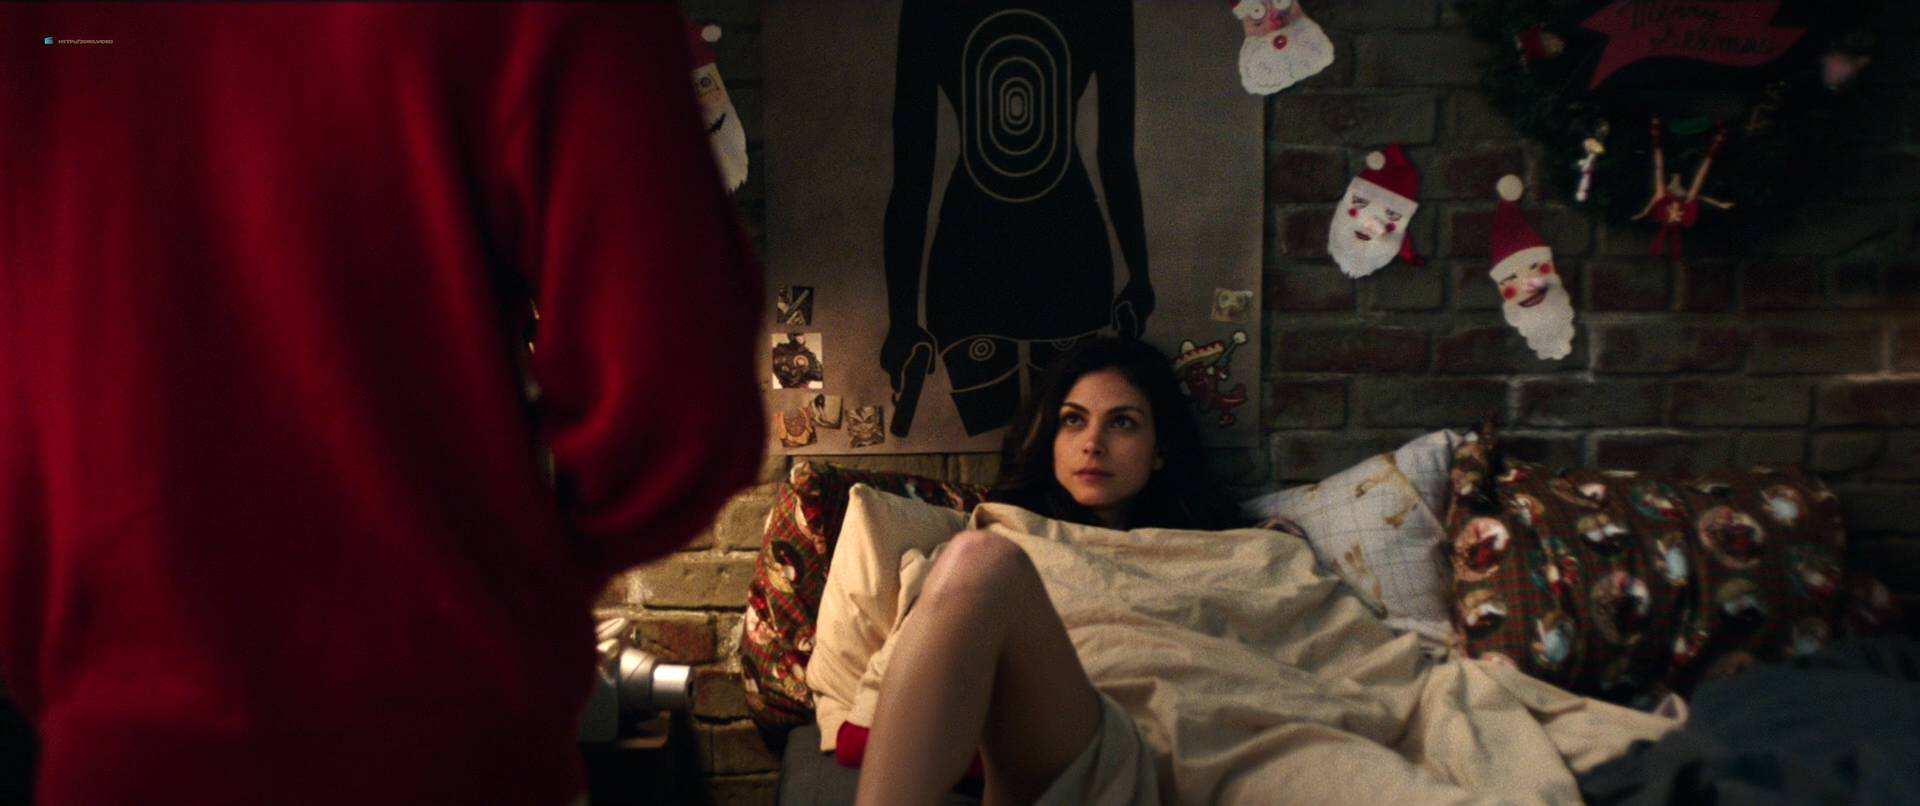 Morena Baccarin hot sex and uber sexy - Deadpool (2016) HD 1080p (7)